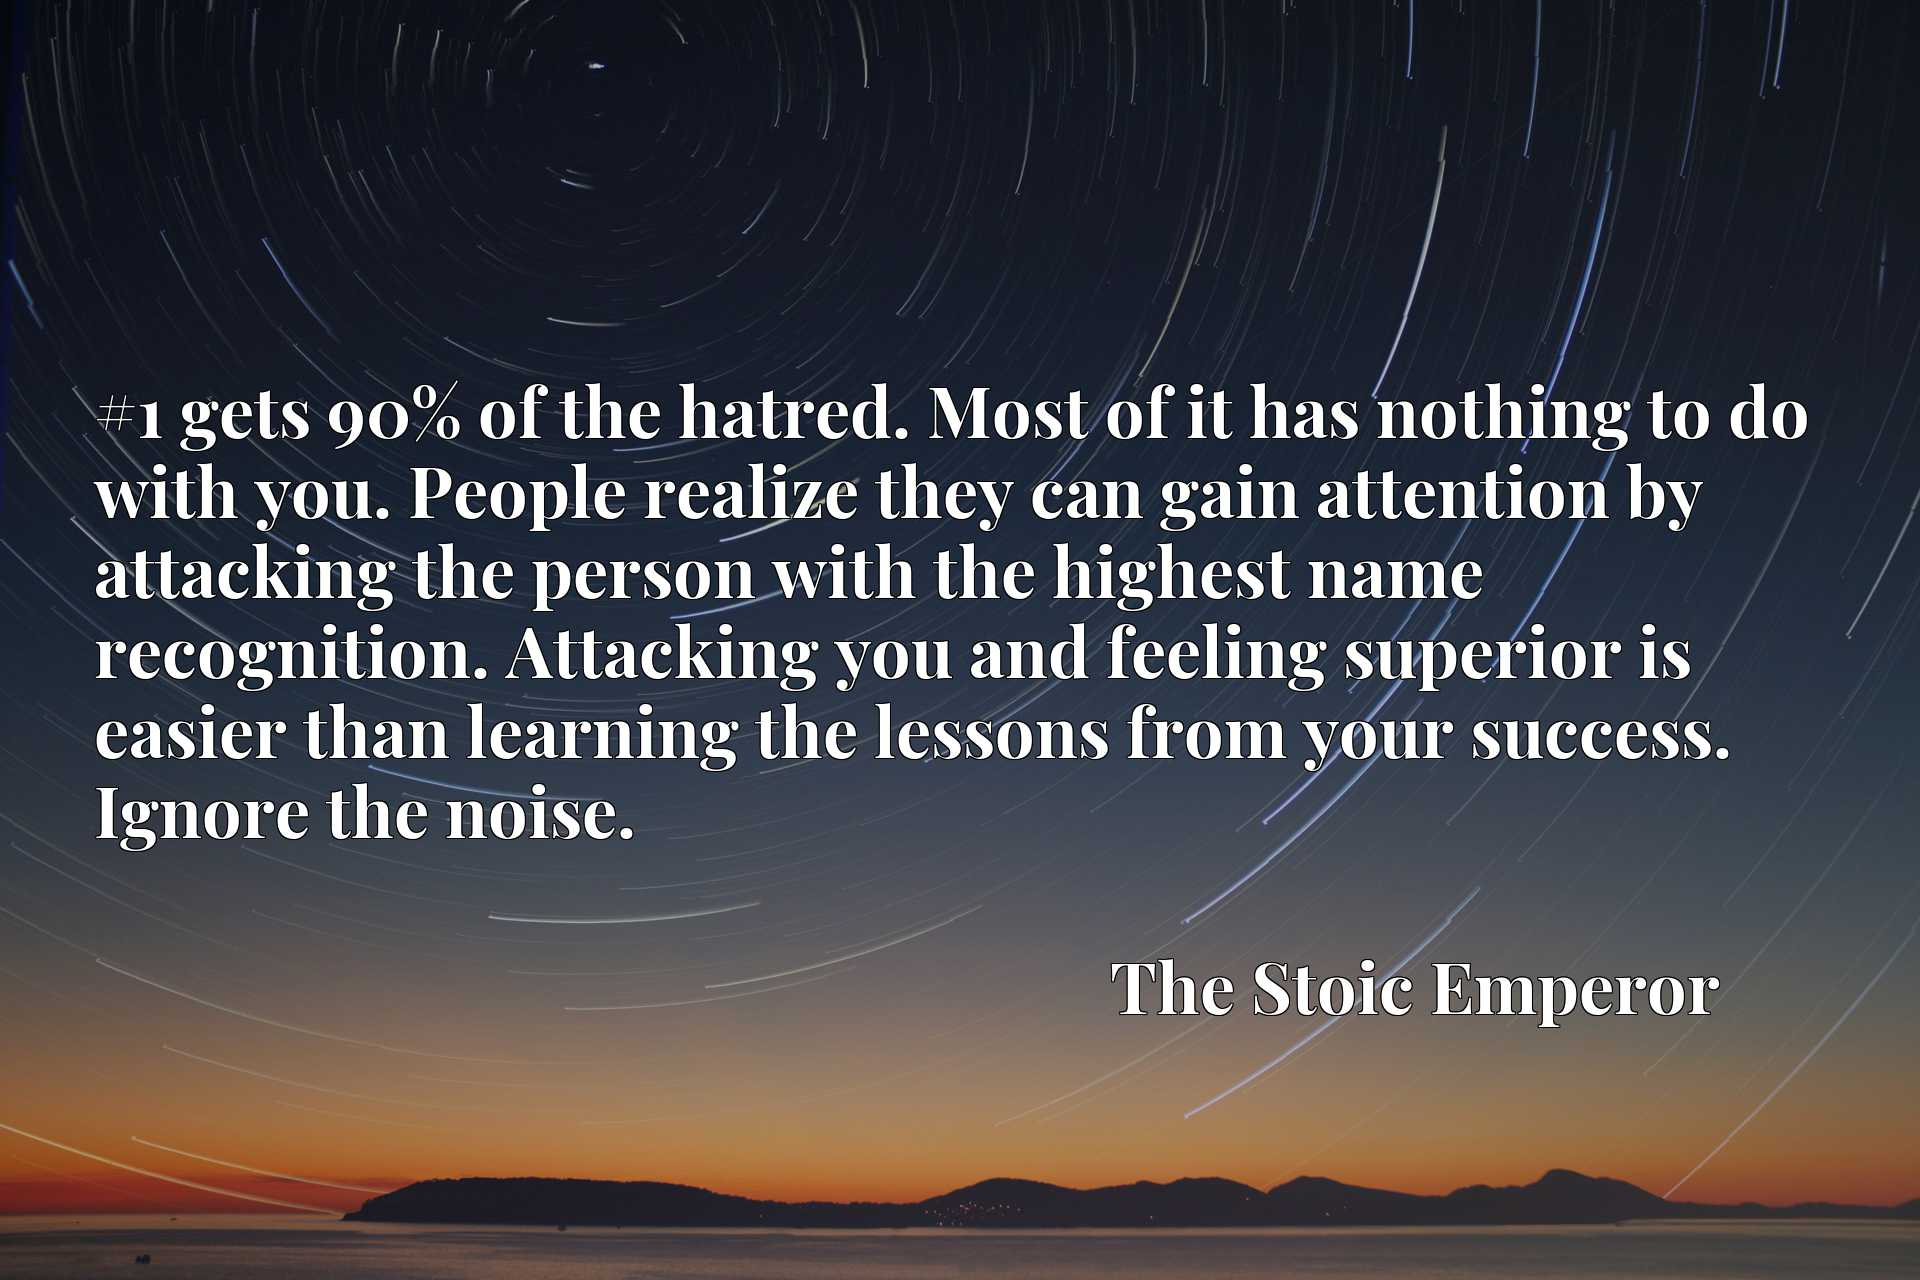 #1 gets 90% of the hatred. Most of it has nothing to do with you. People realize they can gain attention by attacking the person with the highest name recognition. Attacking you and feeling superior is easier than learning the lessons from your success. Ignore the noise.